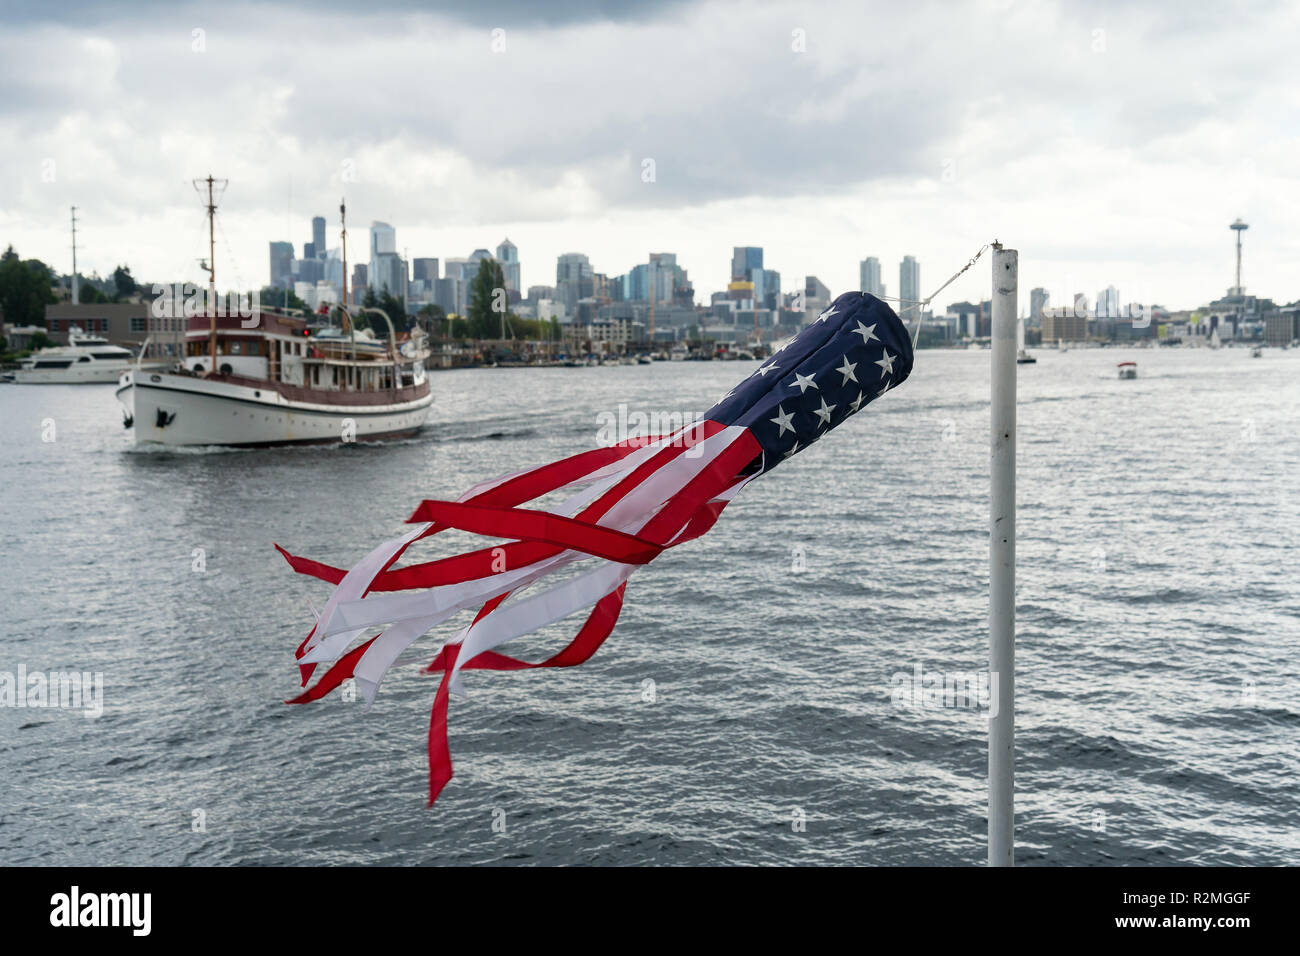 Seattle, Lake Union, Ice Cream Ferry, windbag, Stars and Stripes - Stock Image